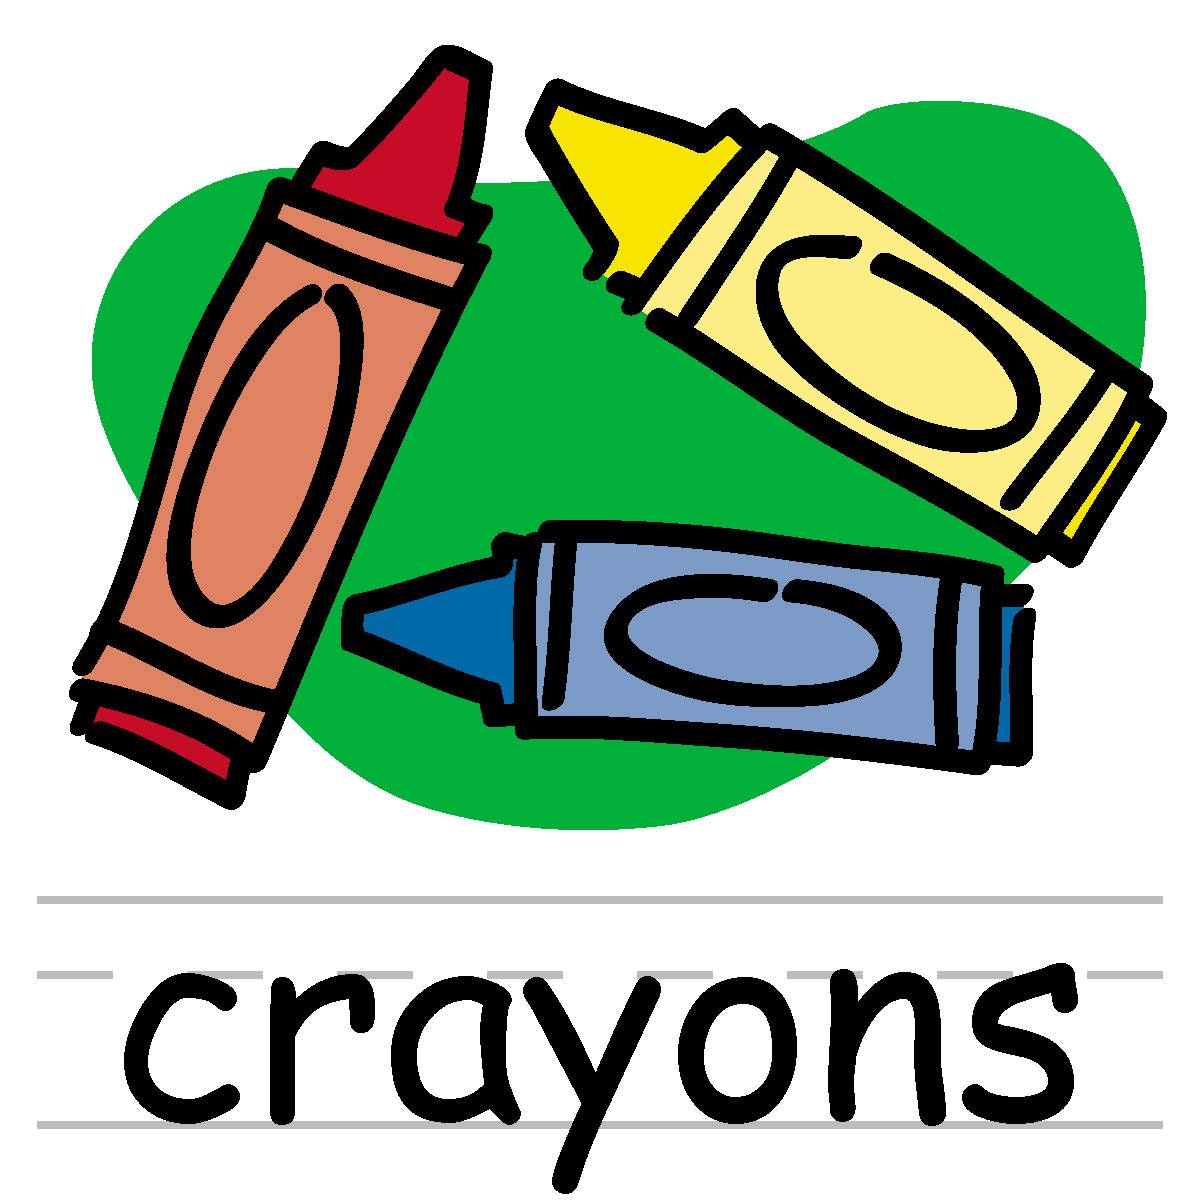 Crayon clipart black and white free images